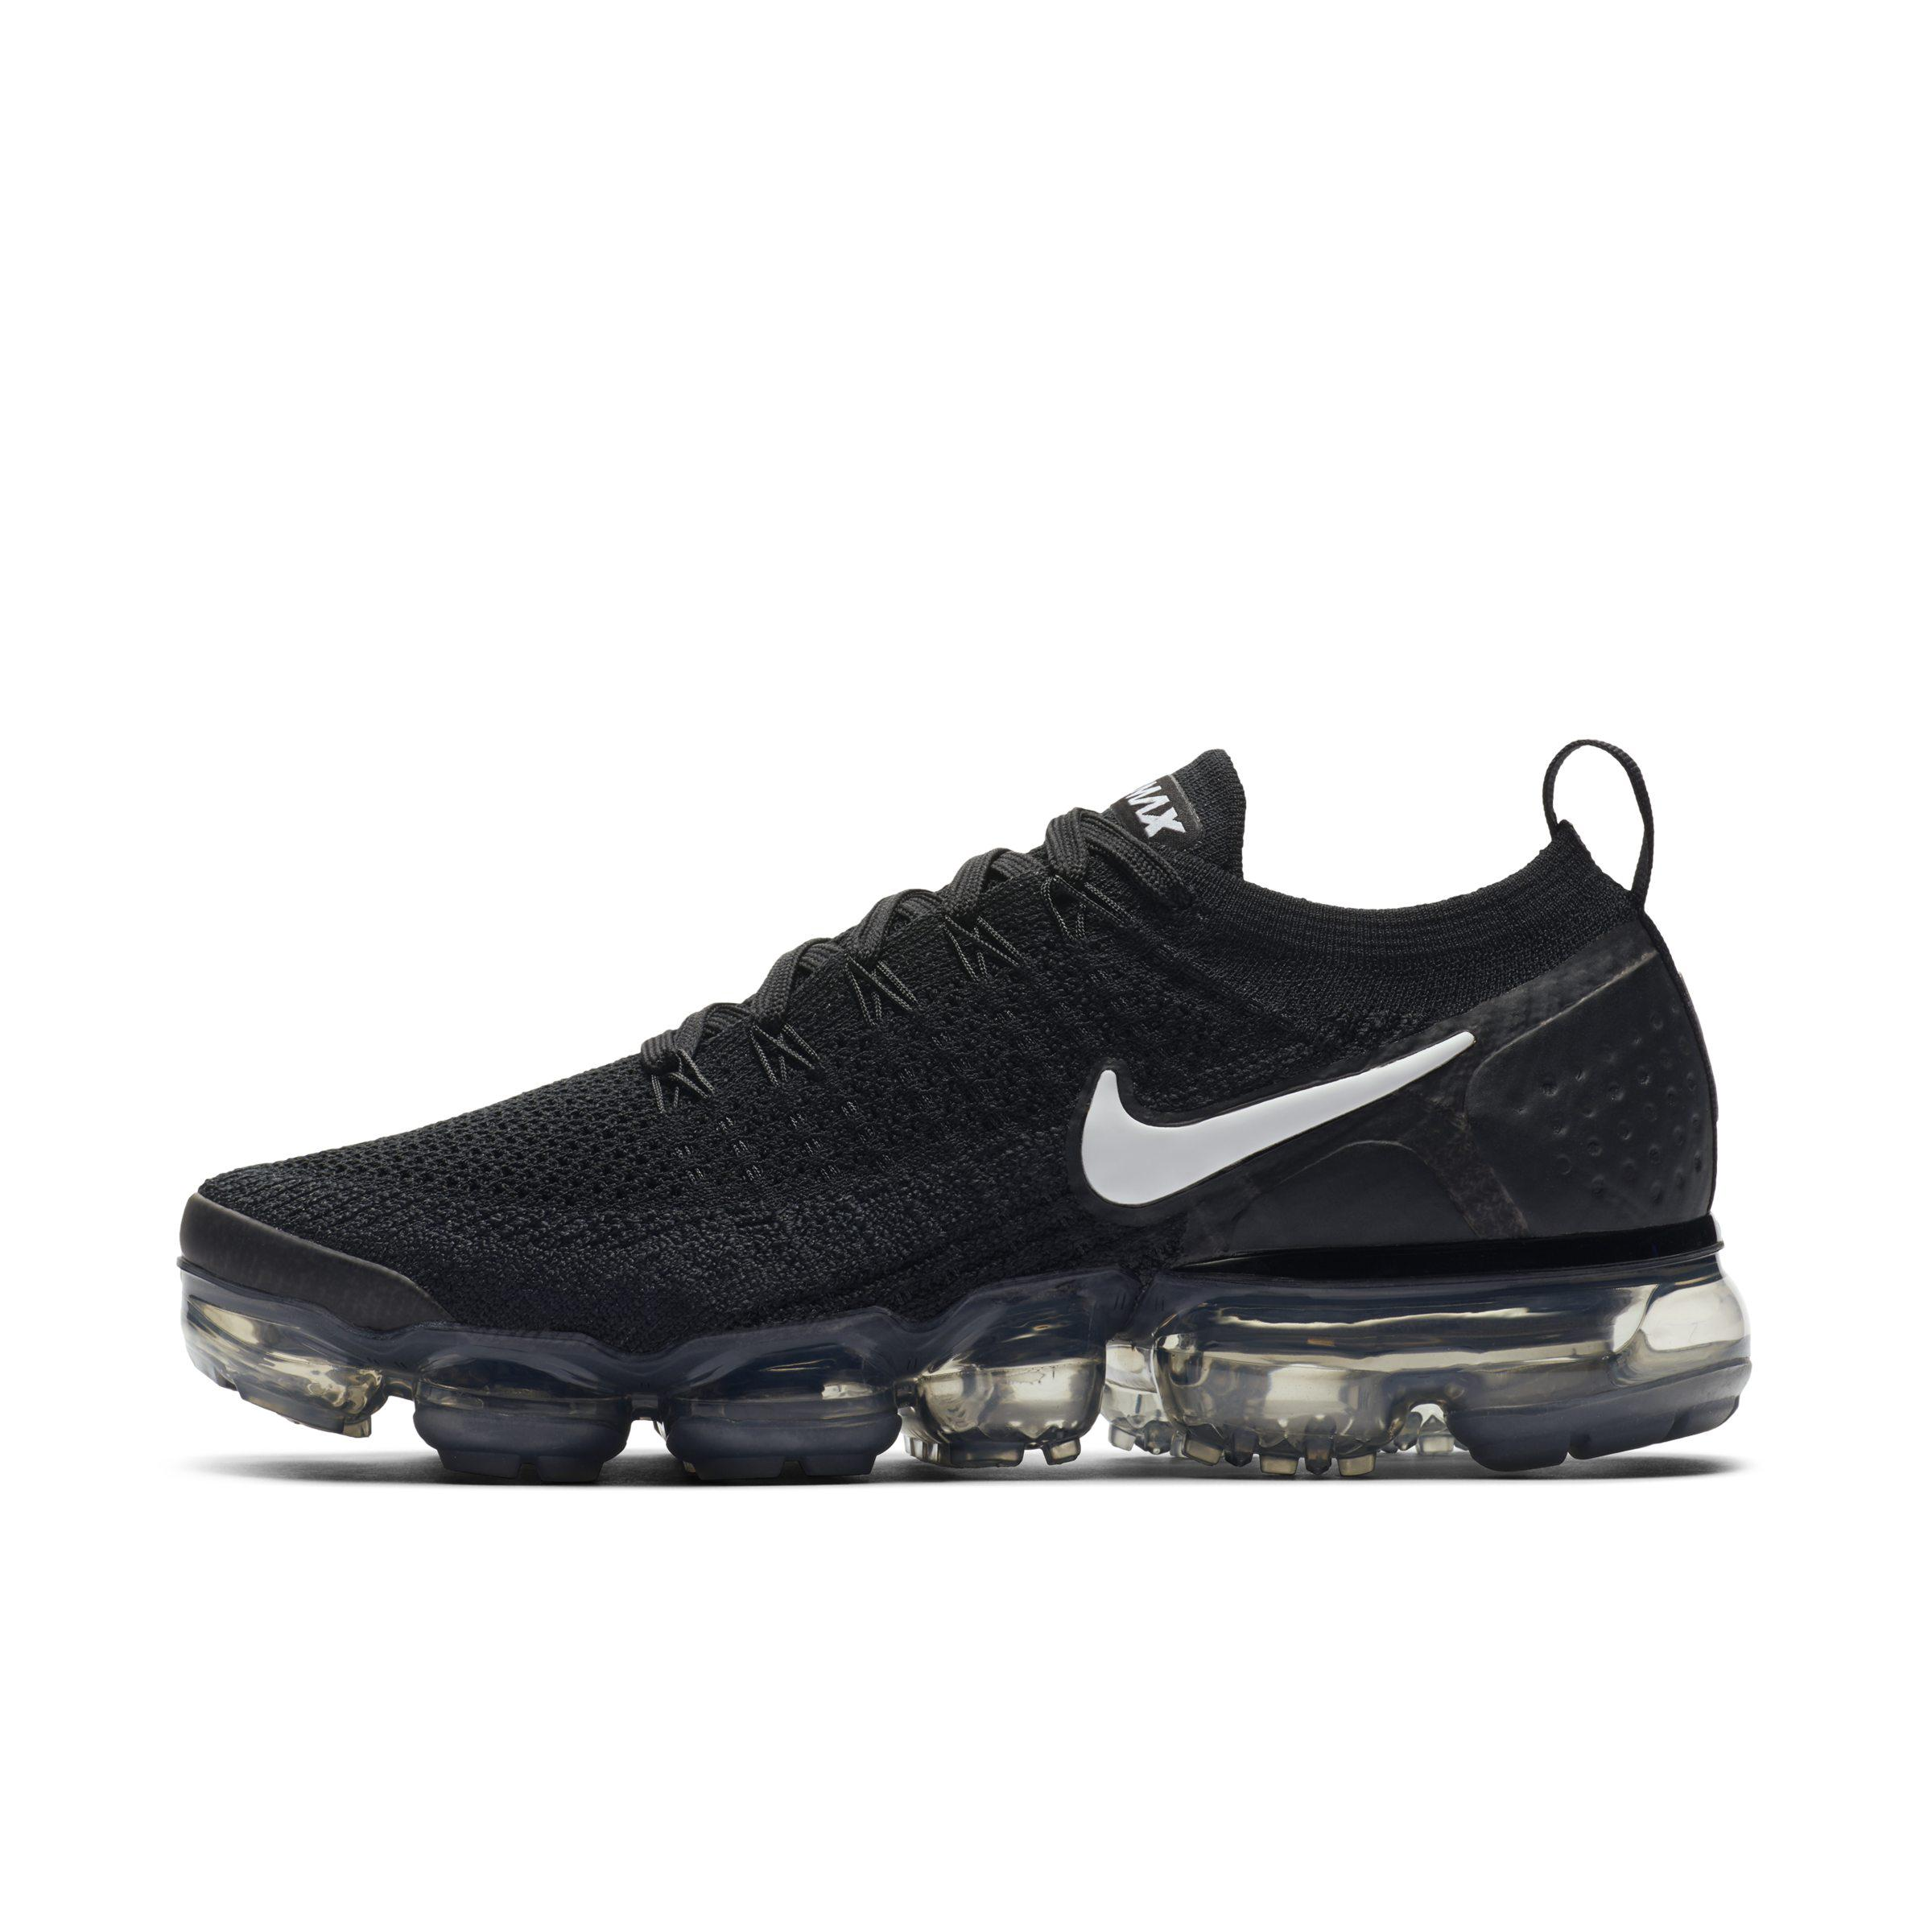 ab9e39cf97632 Nike Air Vapormax Flyknit 2 Running Shoe in Black - Lyst